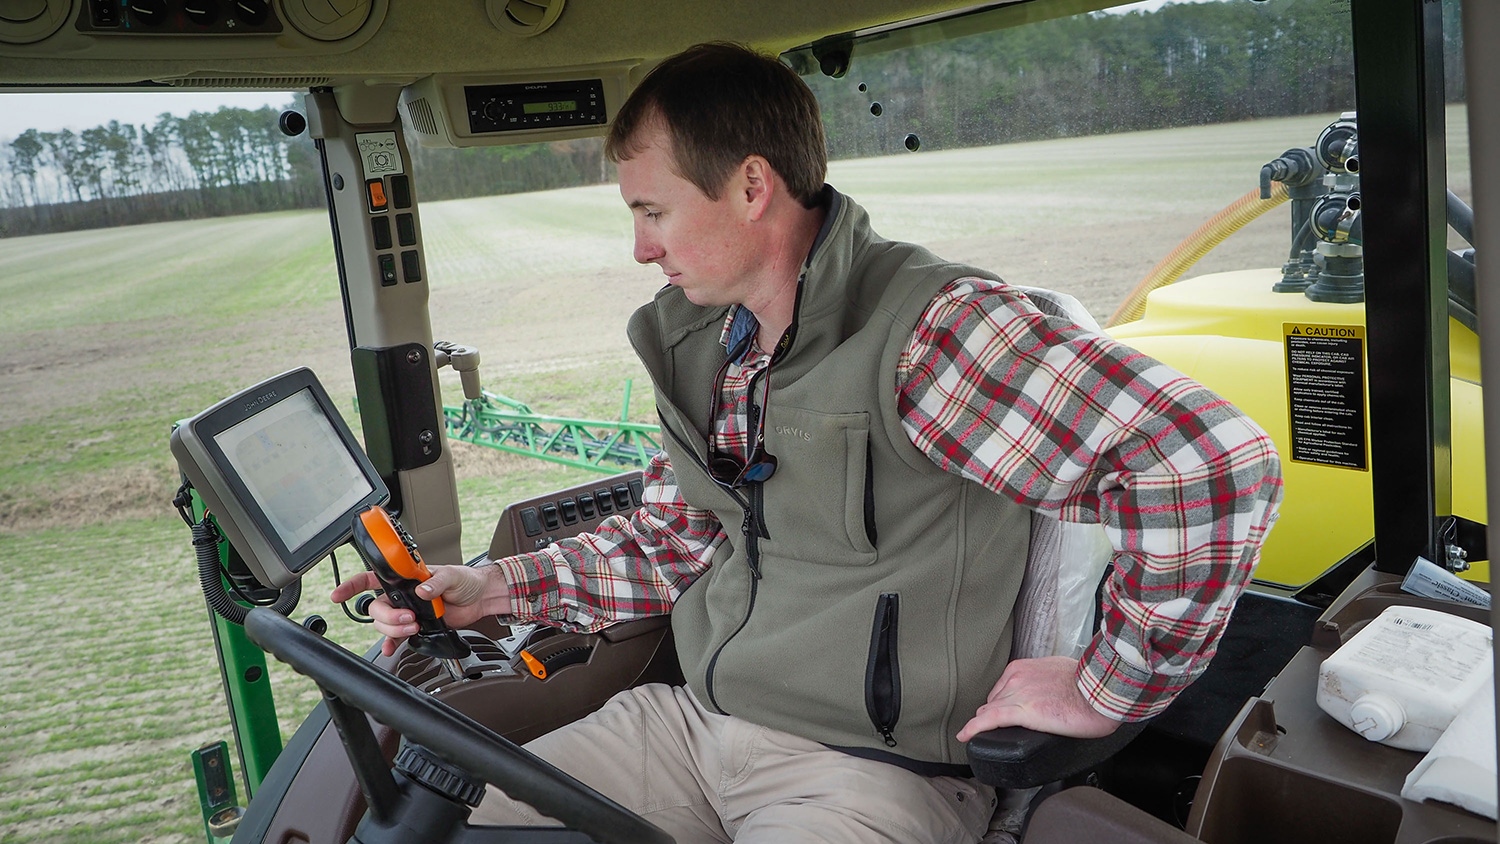 A young man sitting in a tractor looking at farming data.